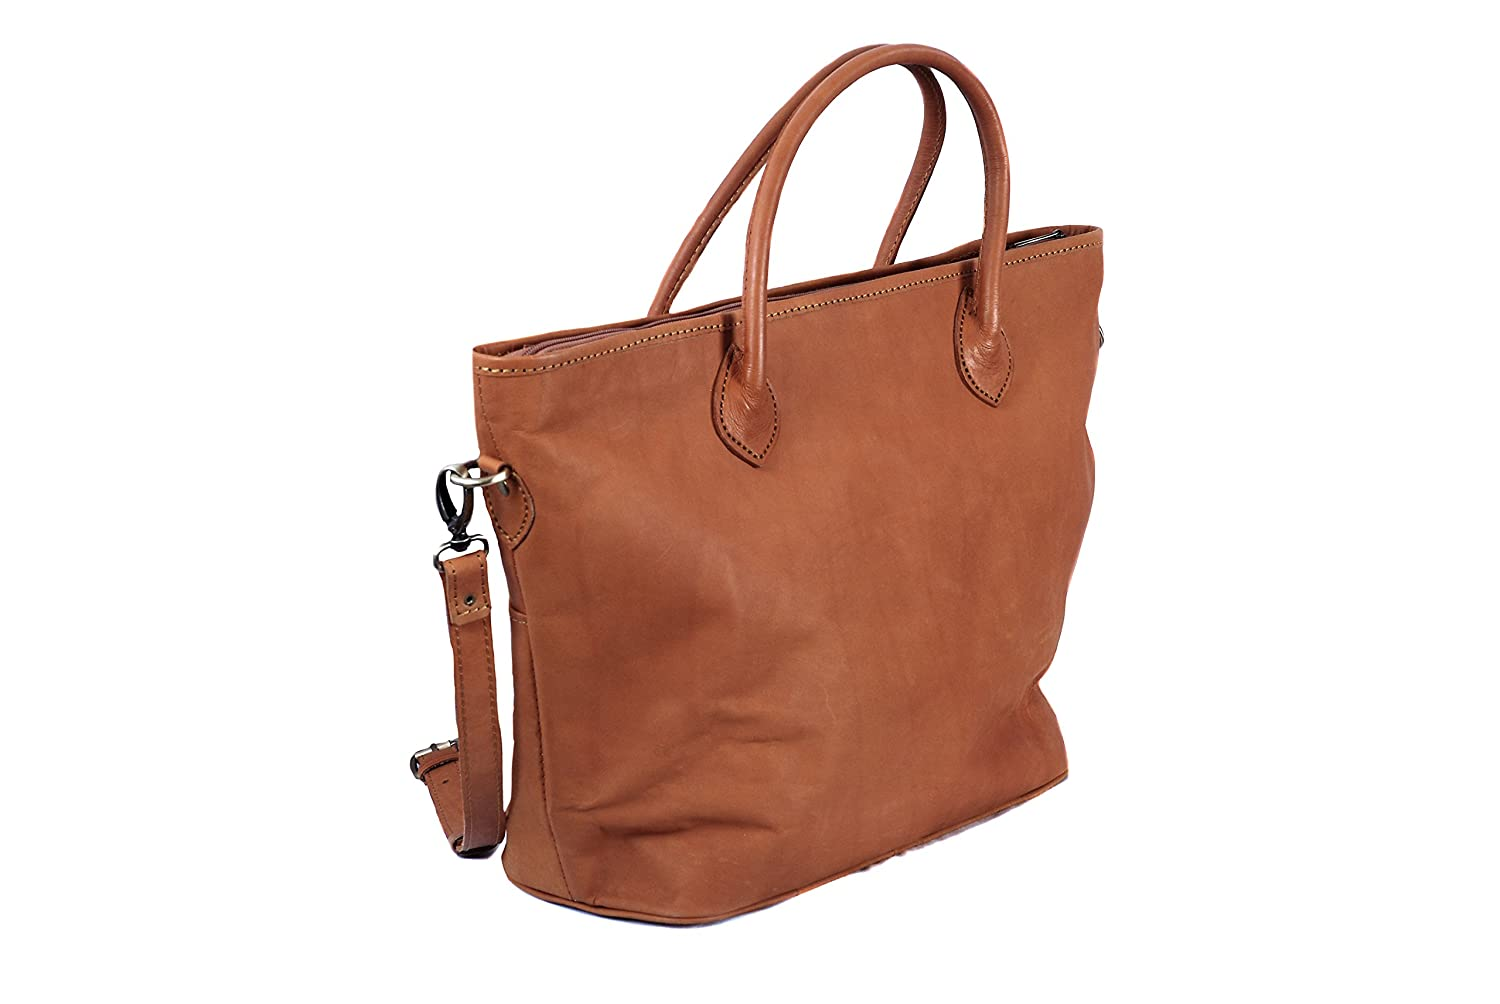 d4bf6a94fa Tan Brown Vintage Leather Large Luxury Tote Bag Designer Shopper by Ashwood   Amazon.co.uk  Shoes   Bags